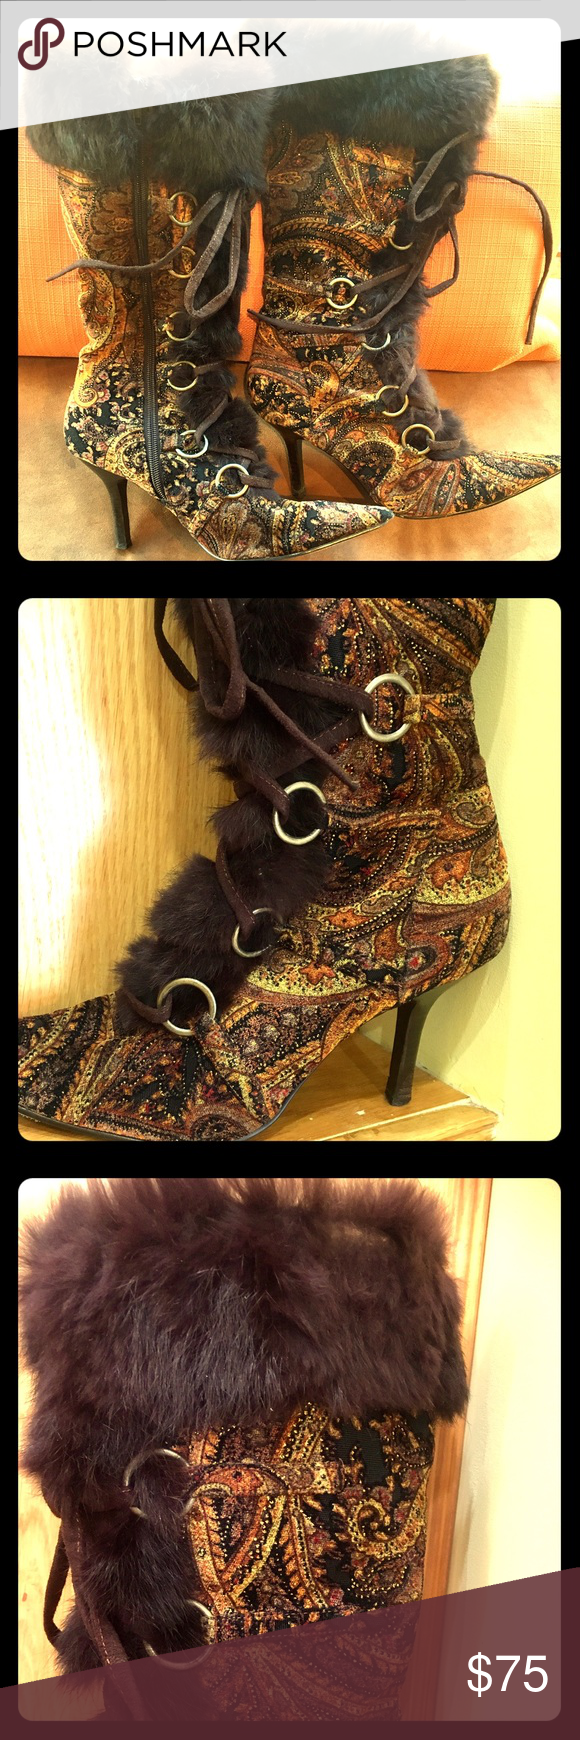 """🎉SALE! 🎉 VINTAGE STYLE BOOT Absolutely Gorgeous Vintage Style Brown Paisley Fabric & Fur-Trimmed Boot, Size 8, but runs a little small. Worn Twice. In great condition! Stiletto heel is approximately 3"""". Boots have zipper, lace ties & non-slip stick-on pads on the bottom. The hardware is silver. They call this boot """"The Honey."""" Extremely Unique! Smoke/pet free. Shoes Heeled Boots"""